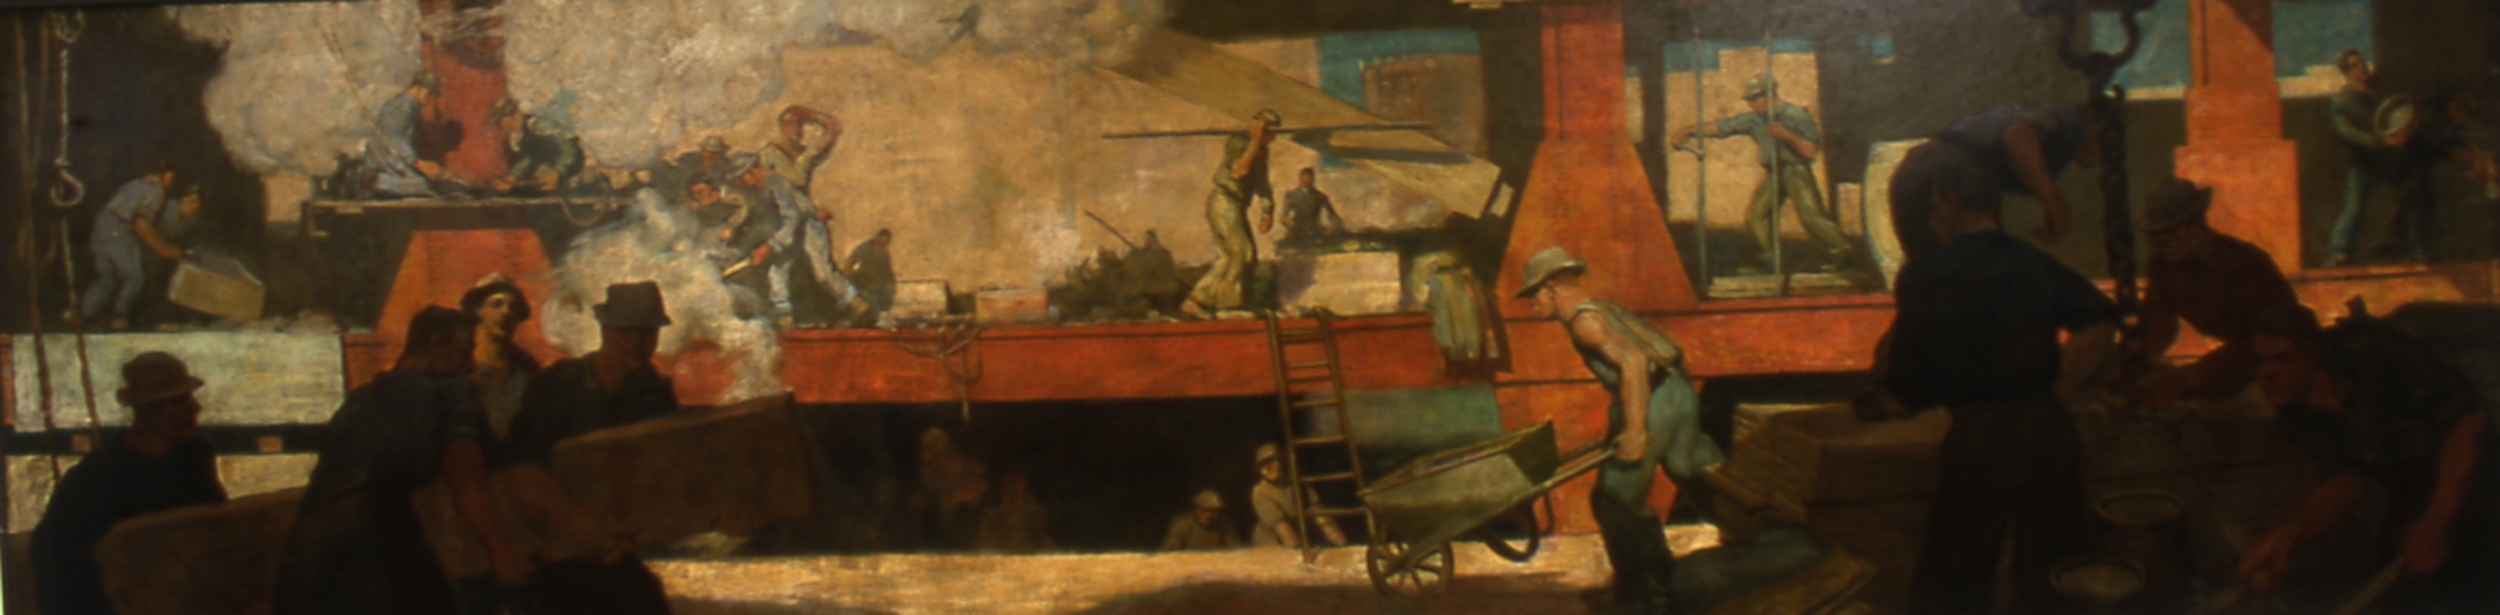 Construction Site , Gordon Stevenson, 1909, oil on canvas, Lane Technical High School.